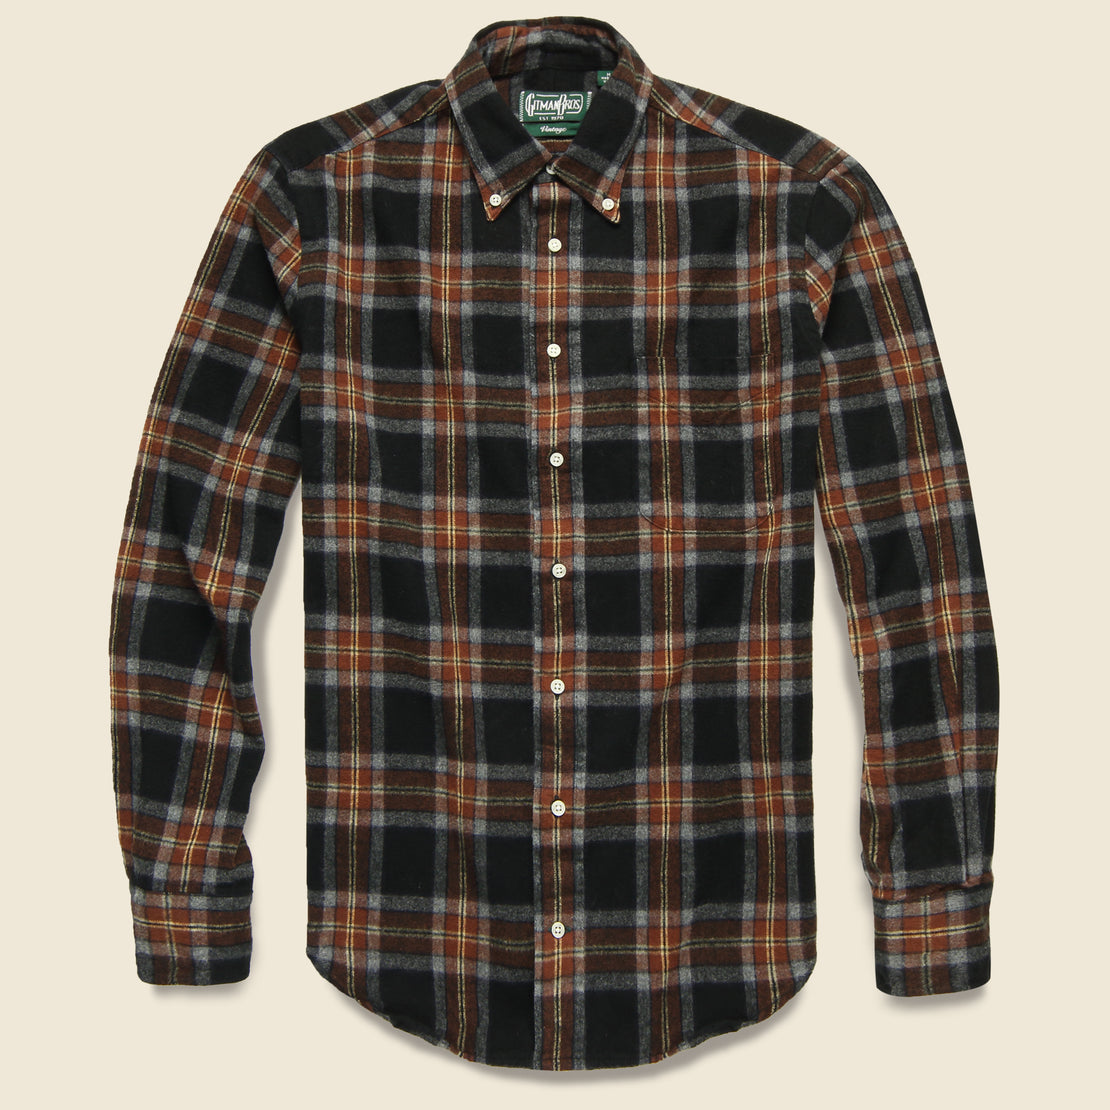 Gitman Vintage Shaggy Brushed Flannel Oxford Shirt - Rust/Black